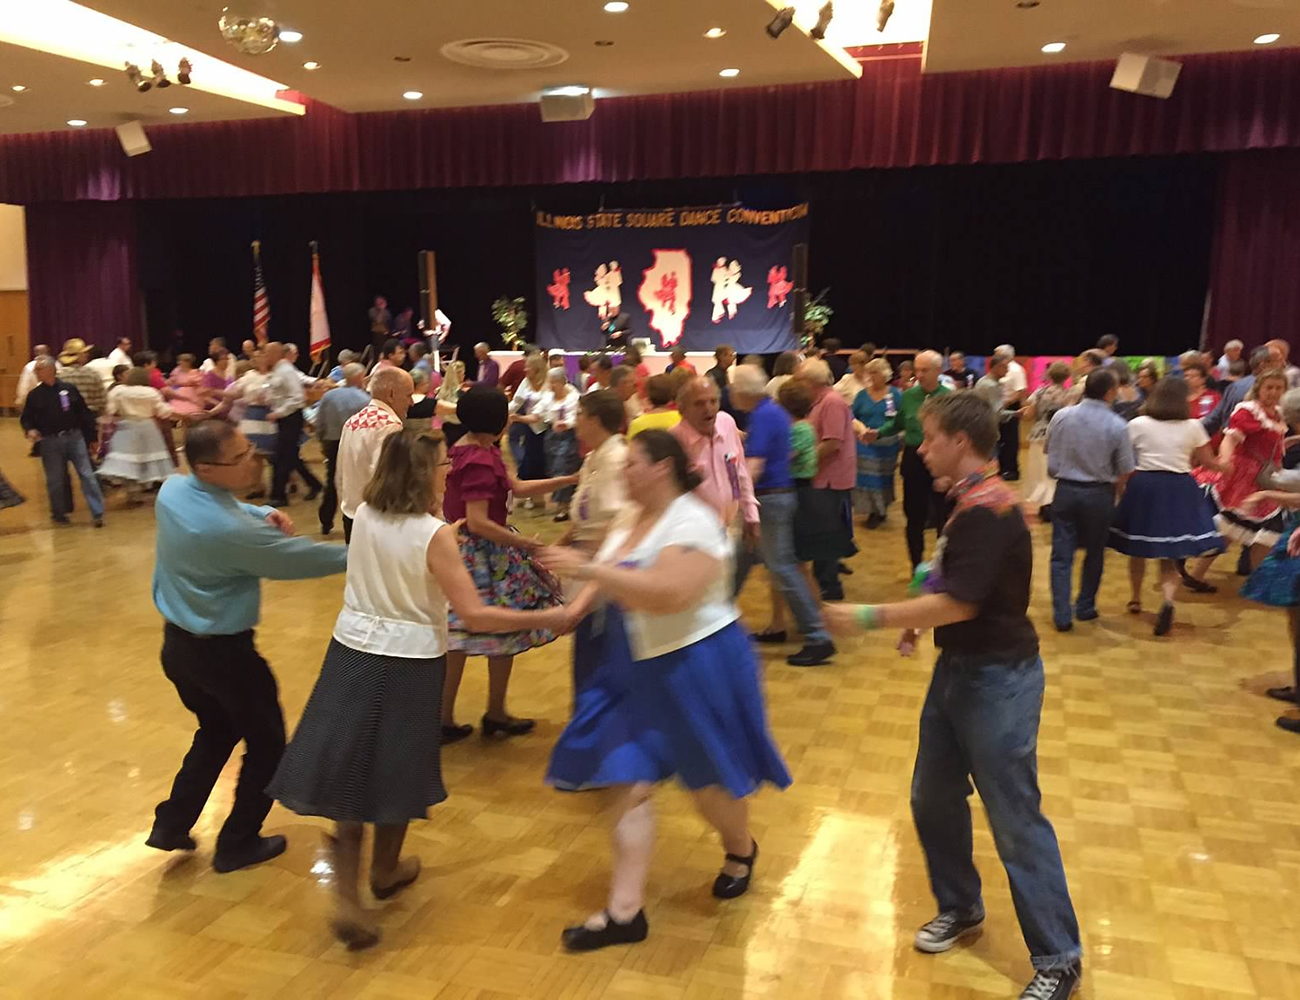 Some of our Club Members at Illinois State Square Dance Convention